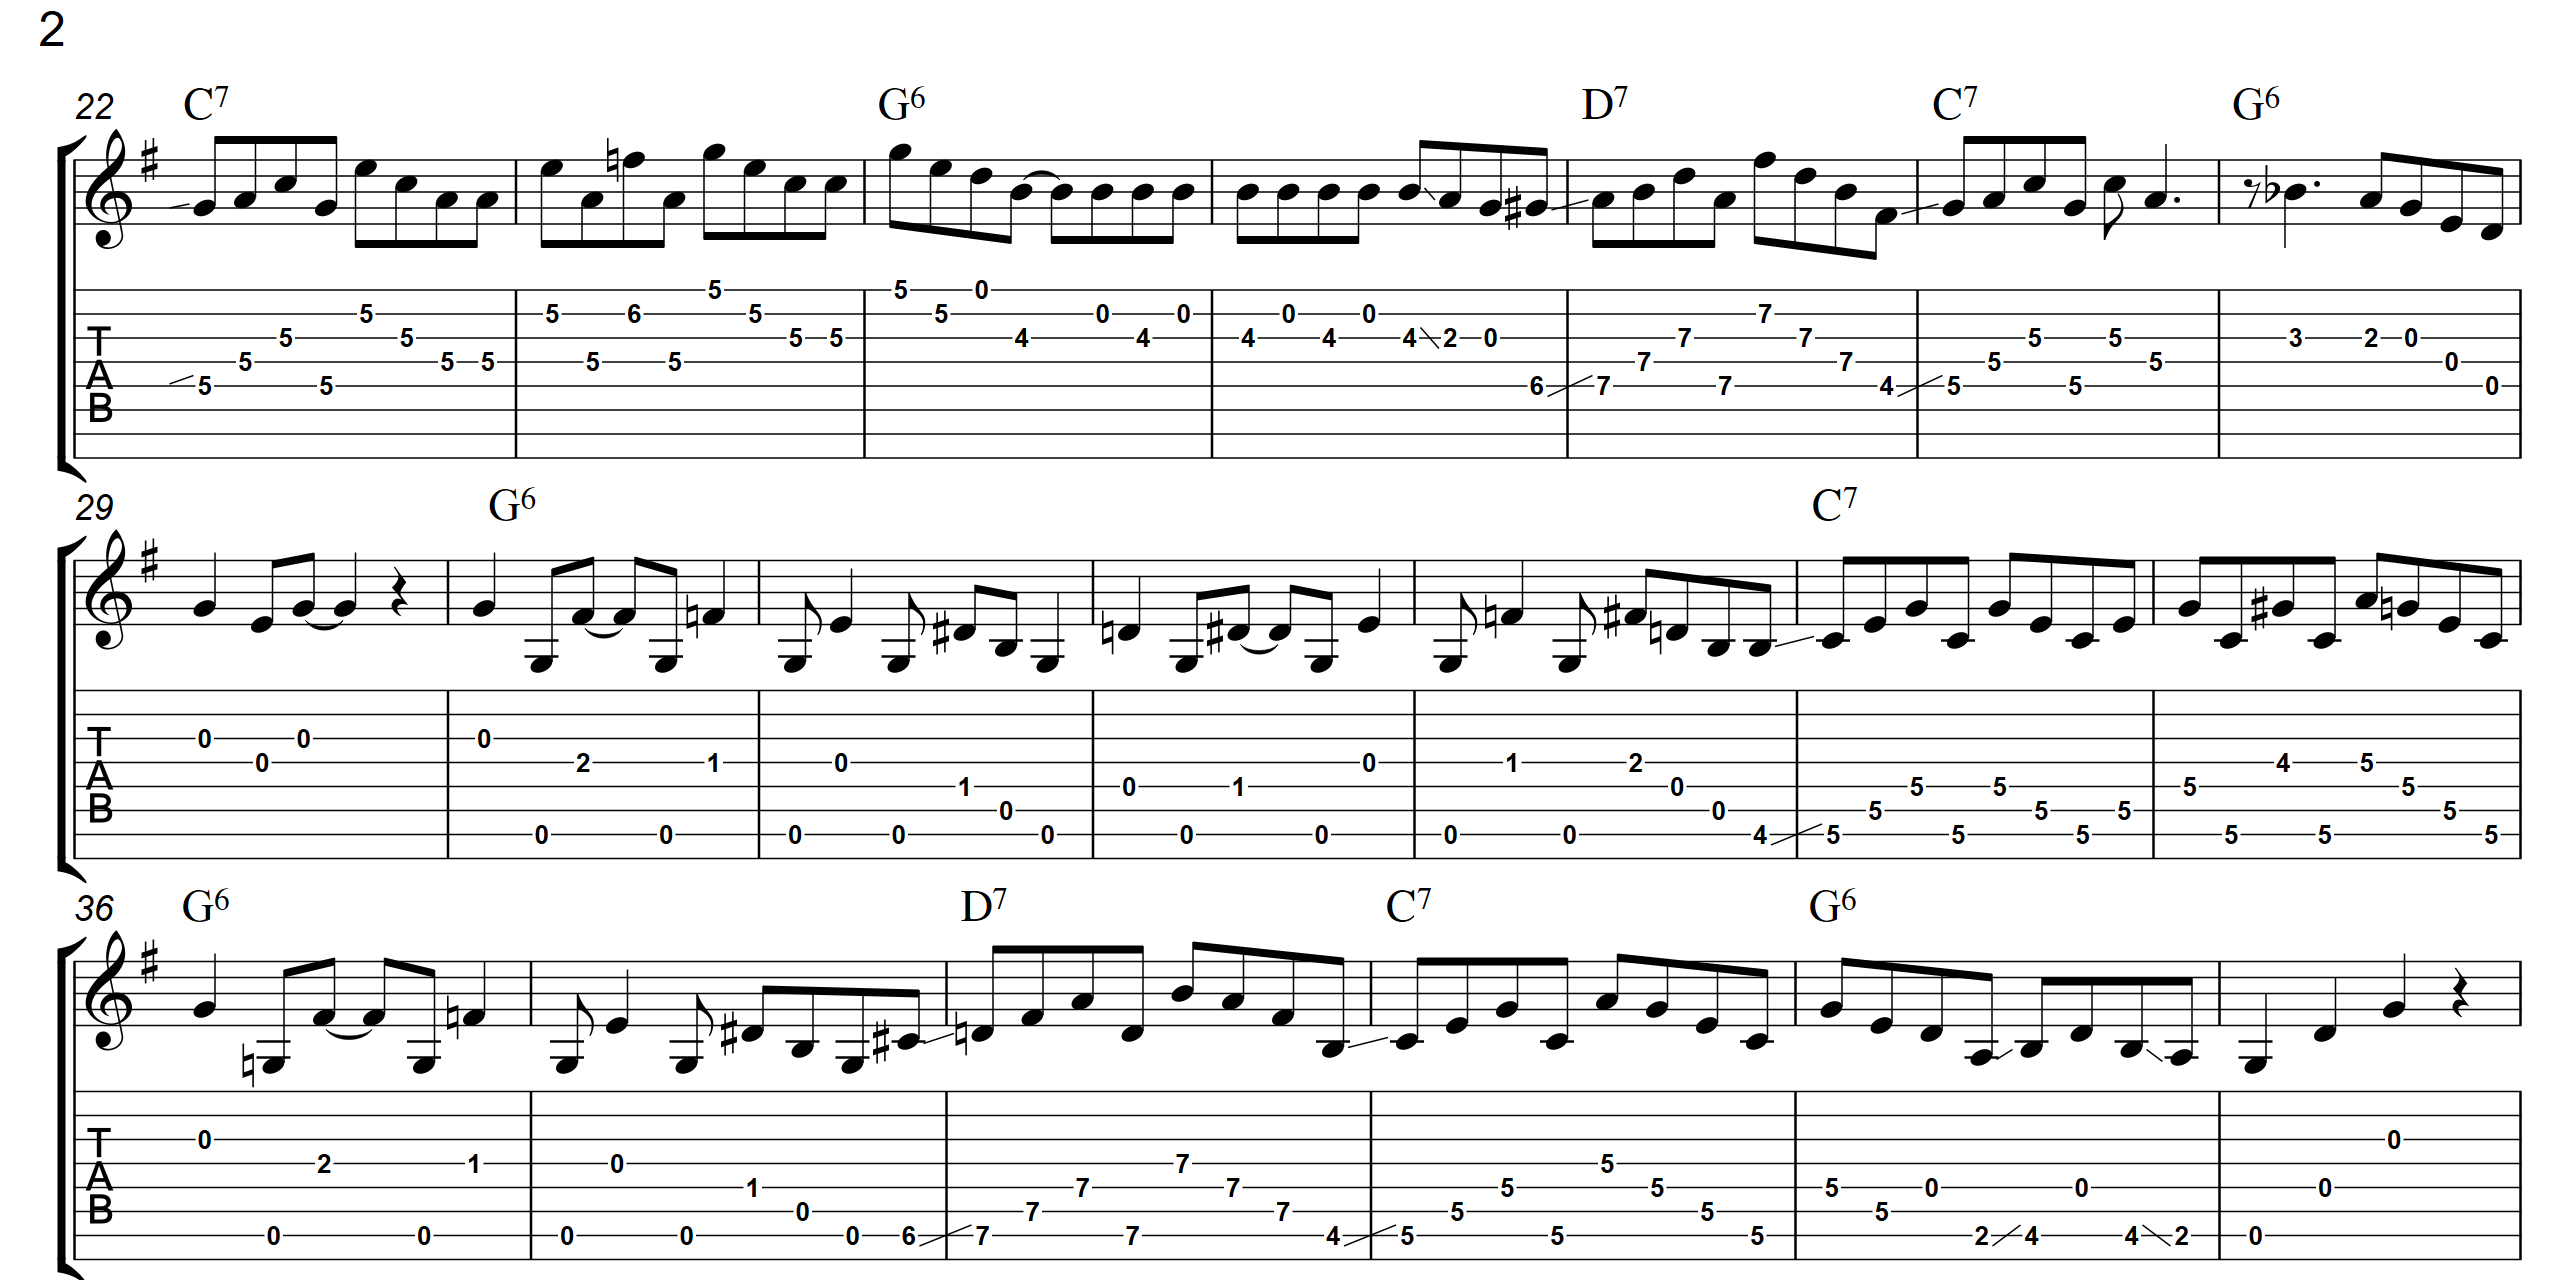 Bluegrass Boogie  TAB - Page 2 - Landscape